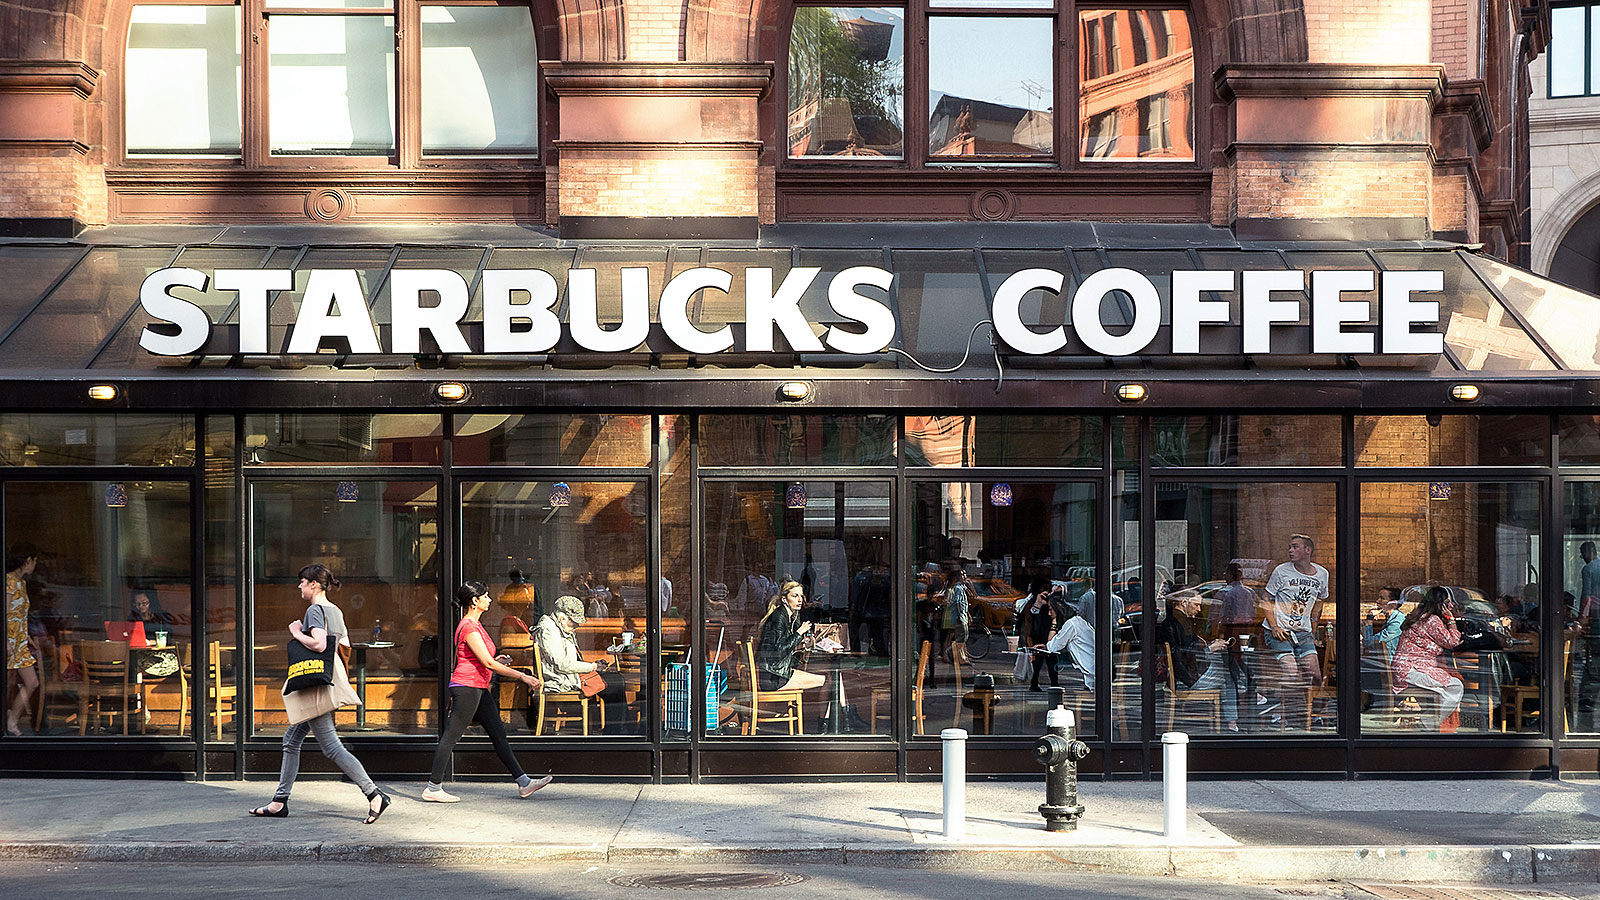 Why fewer people are visiting Starbucks, according to this study